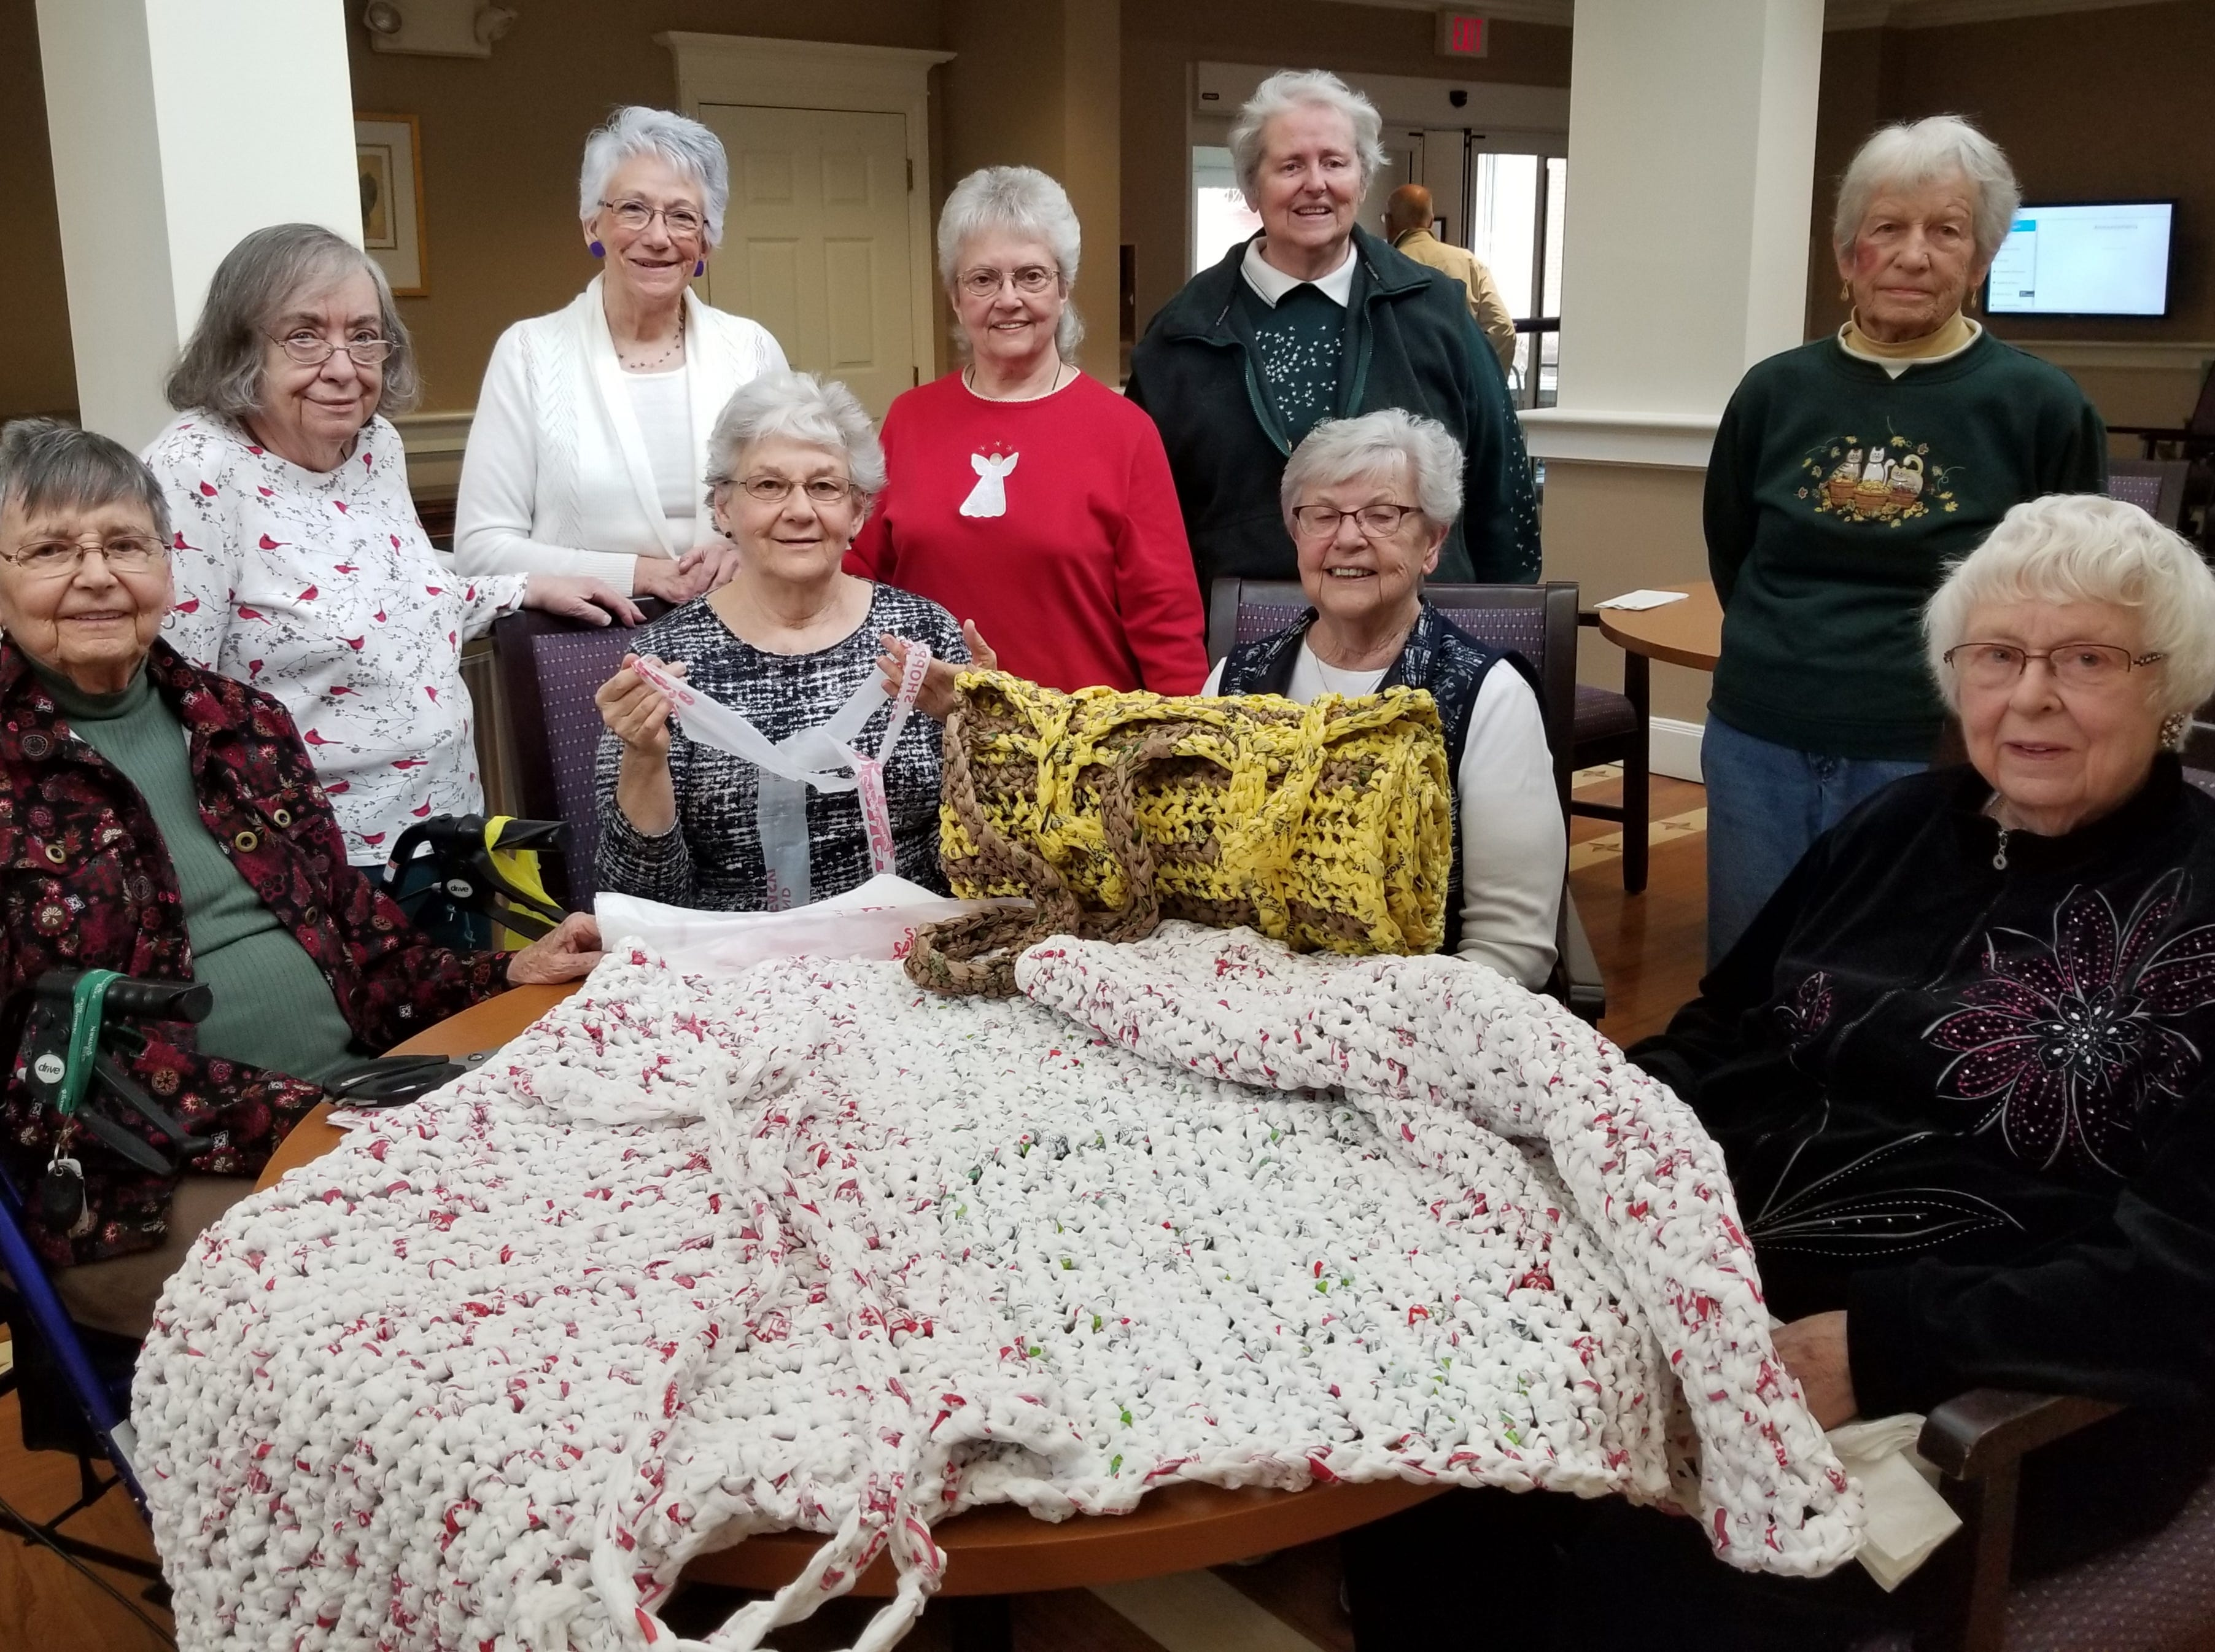 Normandie Ridge residents, from left, Elizabeth Petrick, Joyce Brown, Virginia Foor, Fran Wyre, Betty Shive, Vickie Eisenhart, Karen Naumann, Fern Shanabrook, Ruth Carrozza pose with sleeping mats which they made from recycled plastic bags. ÒThe Plarn People of Normandie RidgeÓ have been making the mats from recycled plastic bags. The mats will be donated to LifePath Christian Ministries in York, a non-profit agency helping the homeless and those living in poverty. submitted